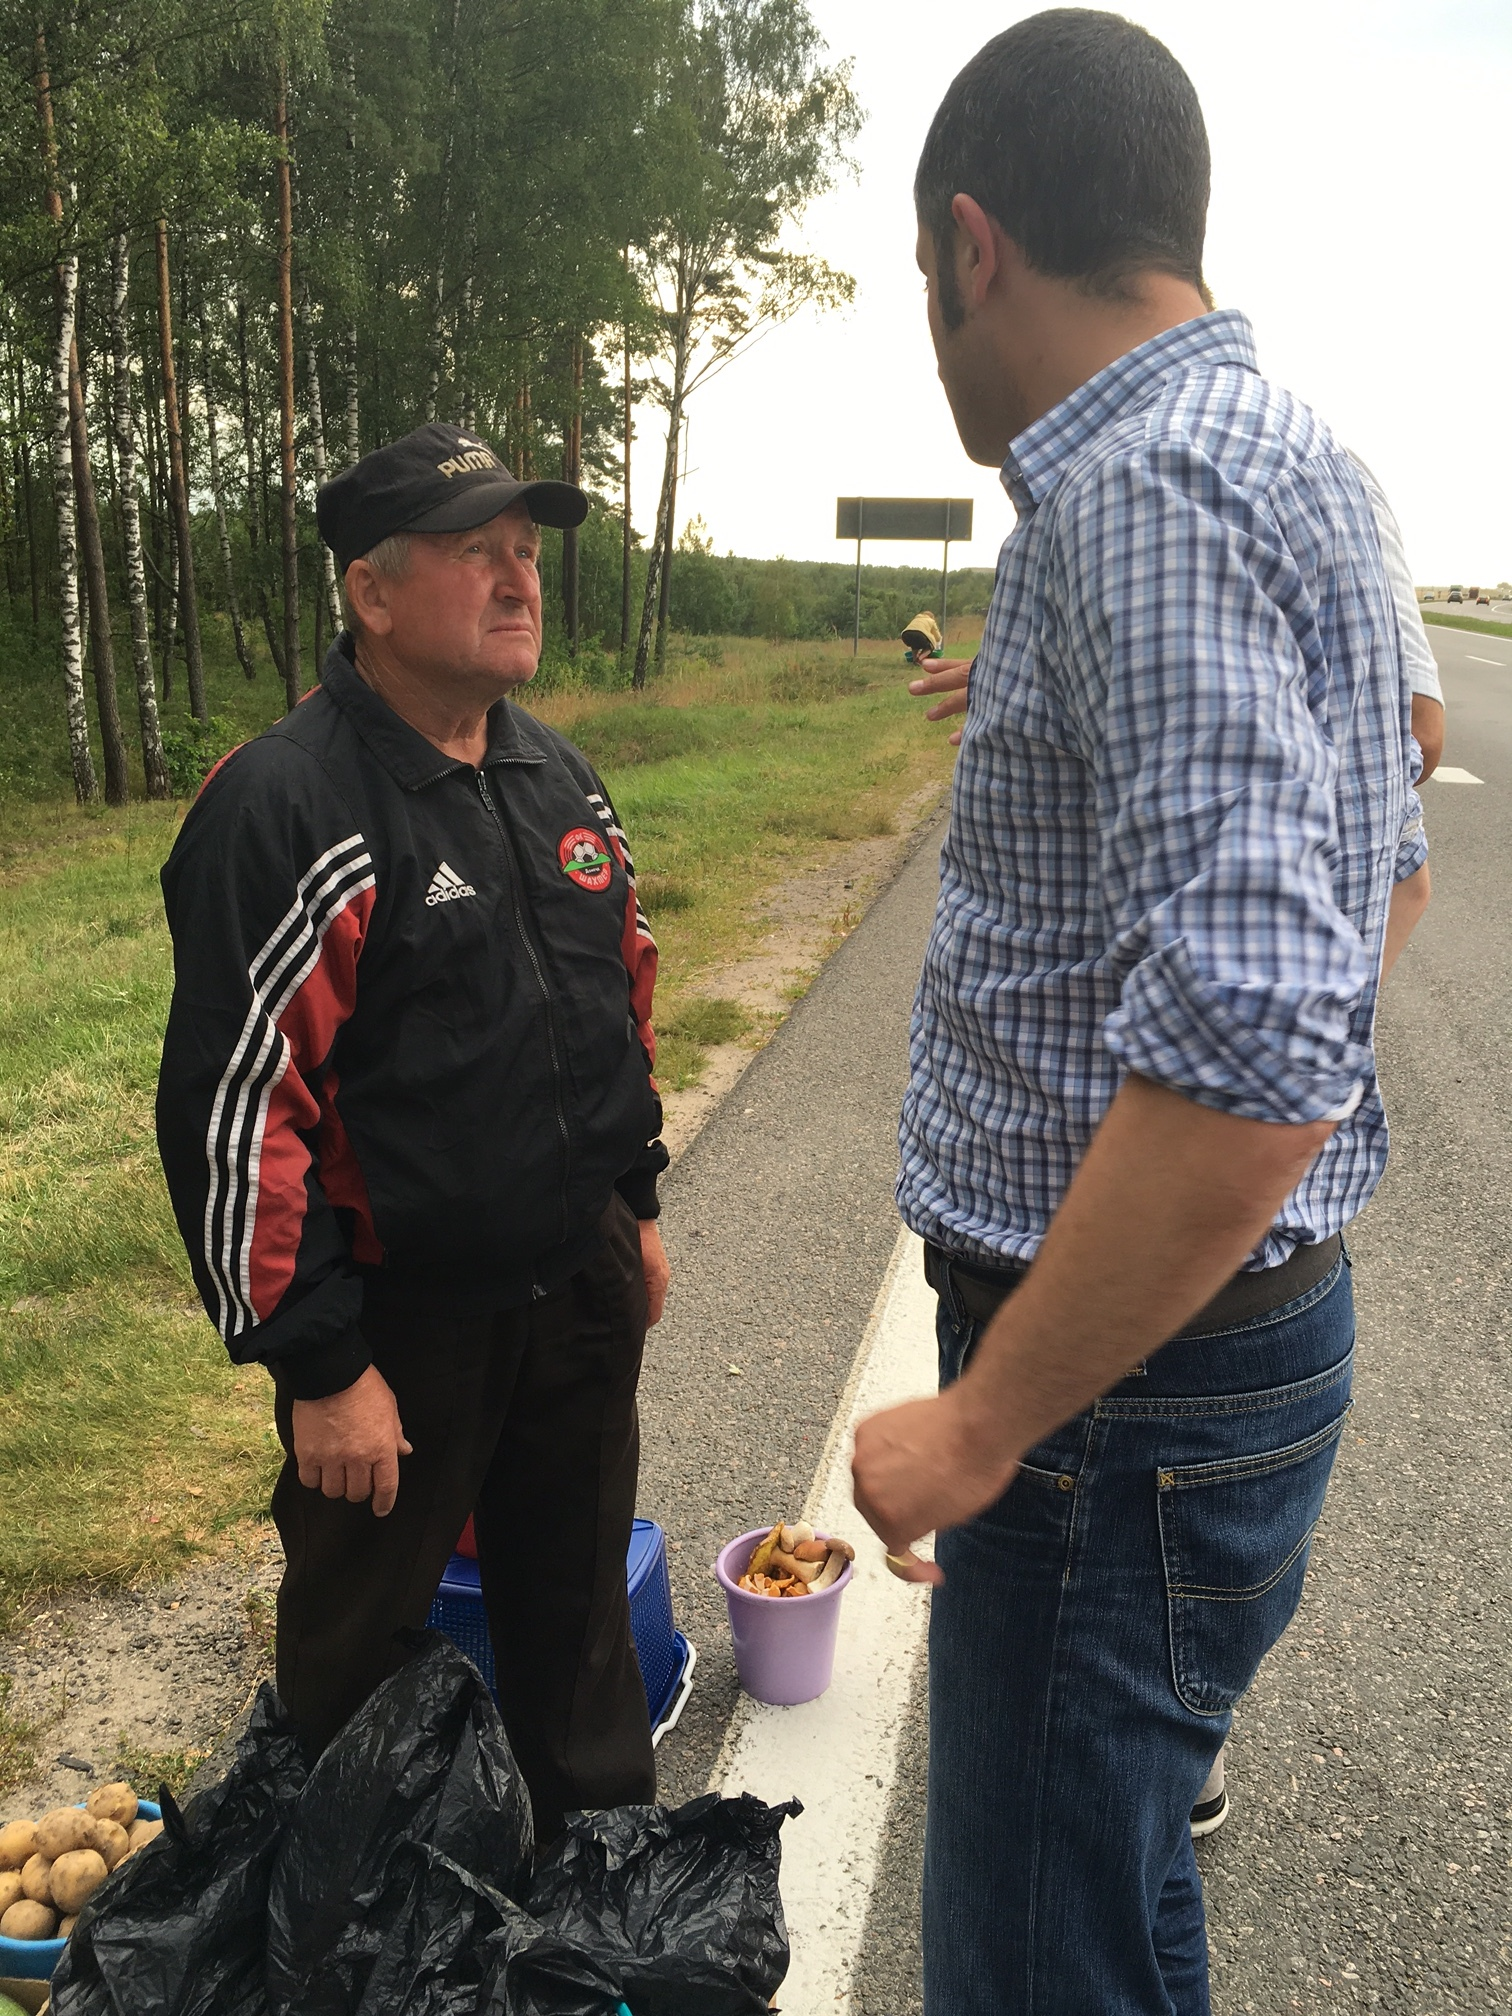 Buying 3kg of blueberries from a fruit seller on the side of the motorway on the way to the border.